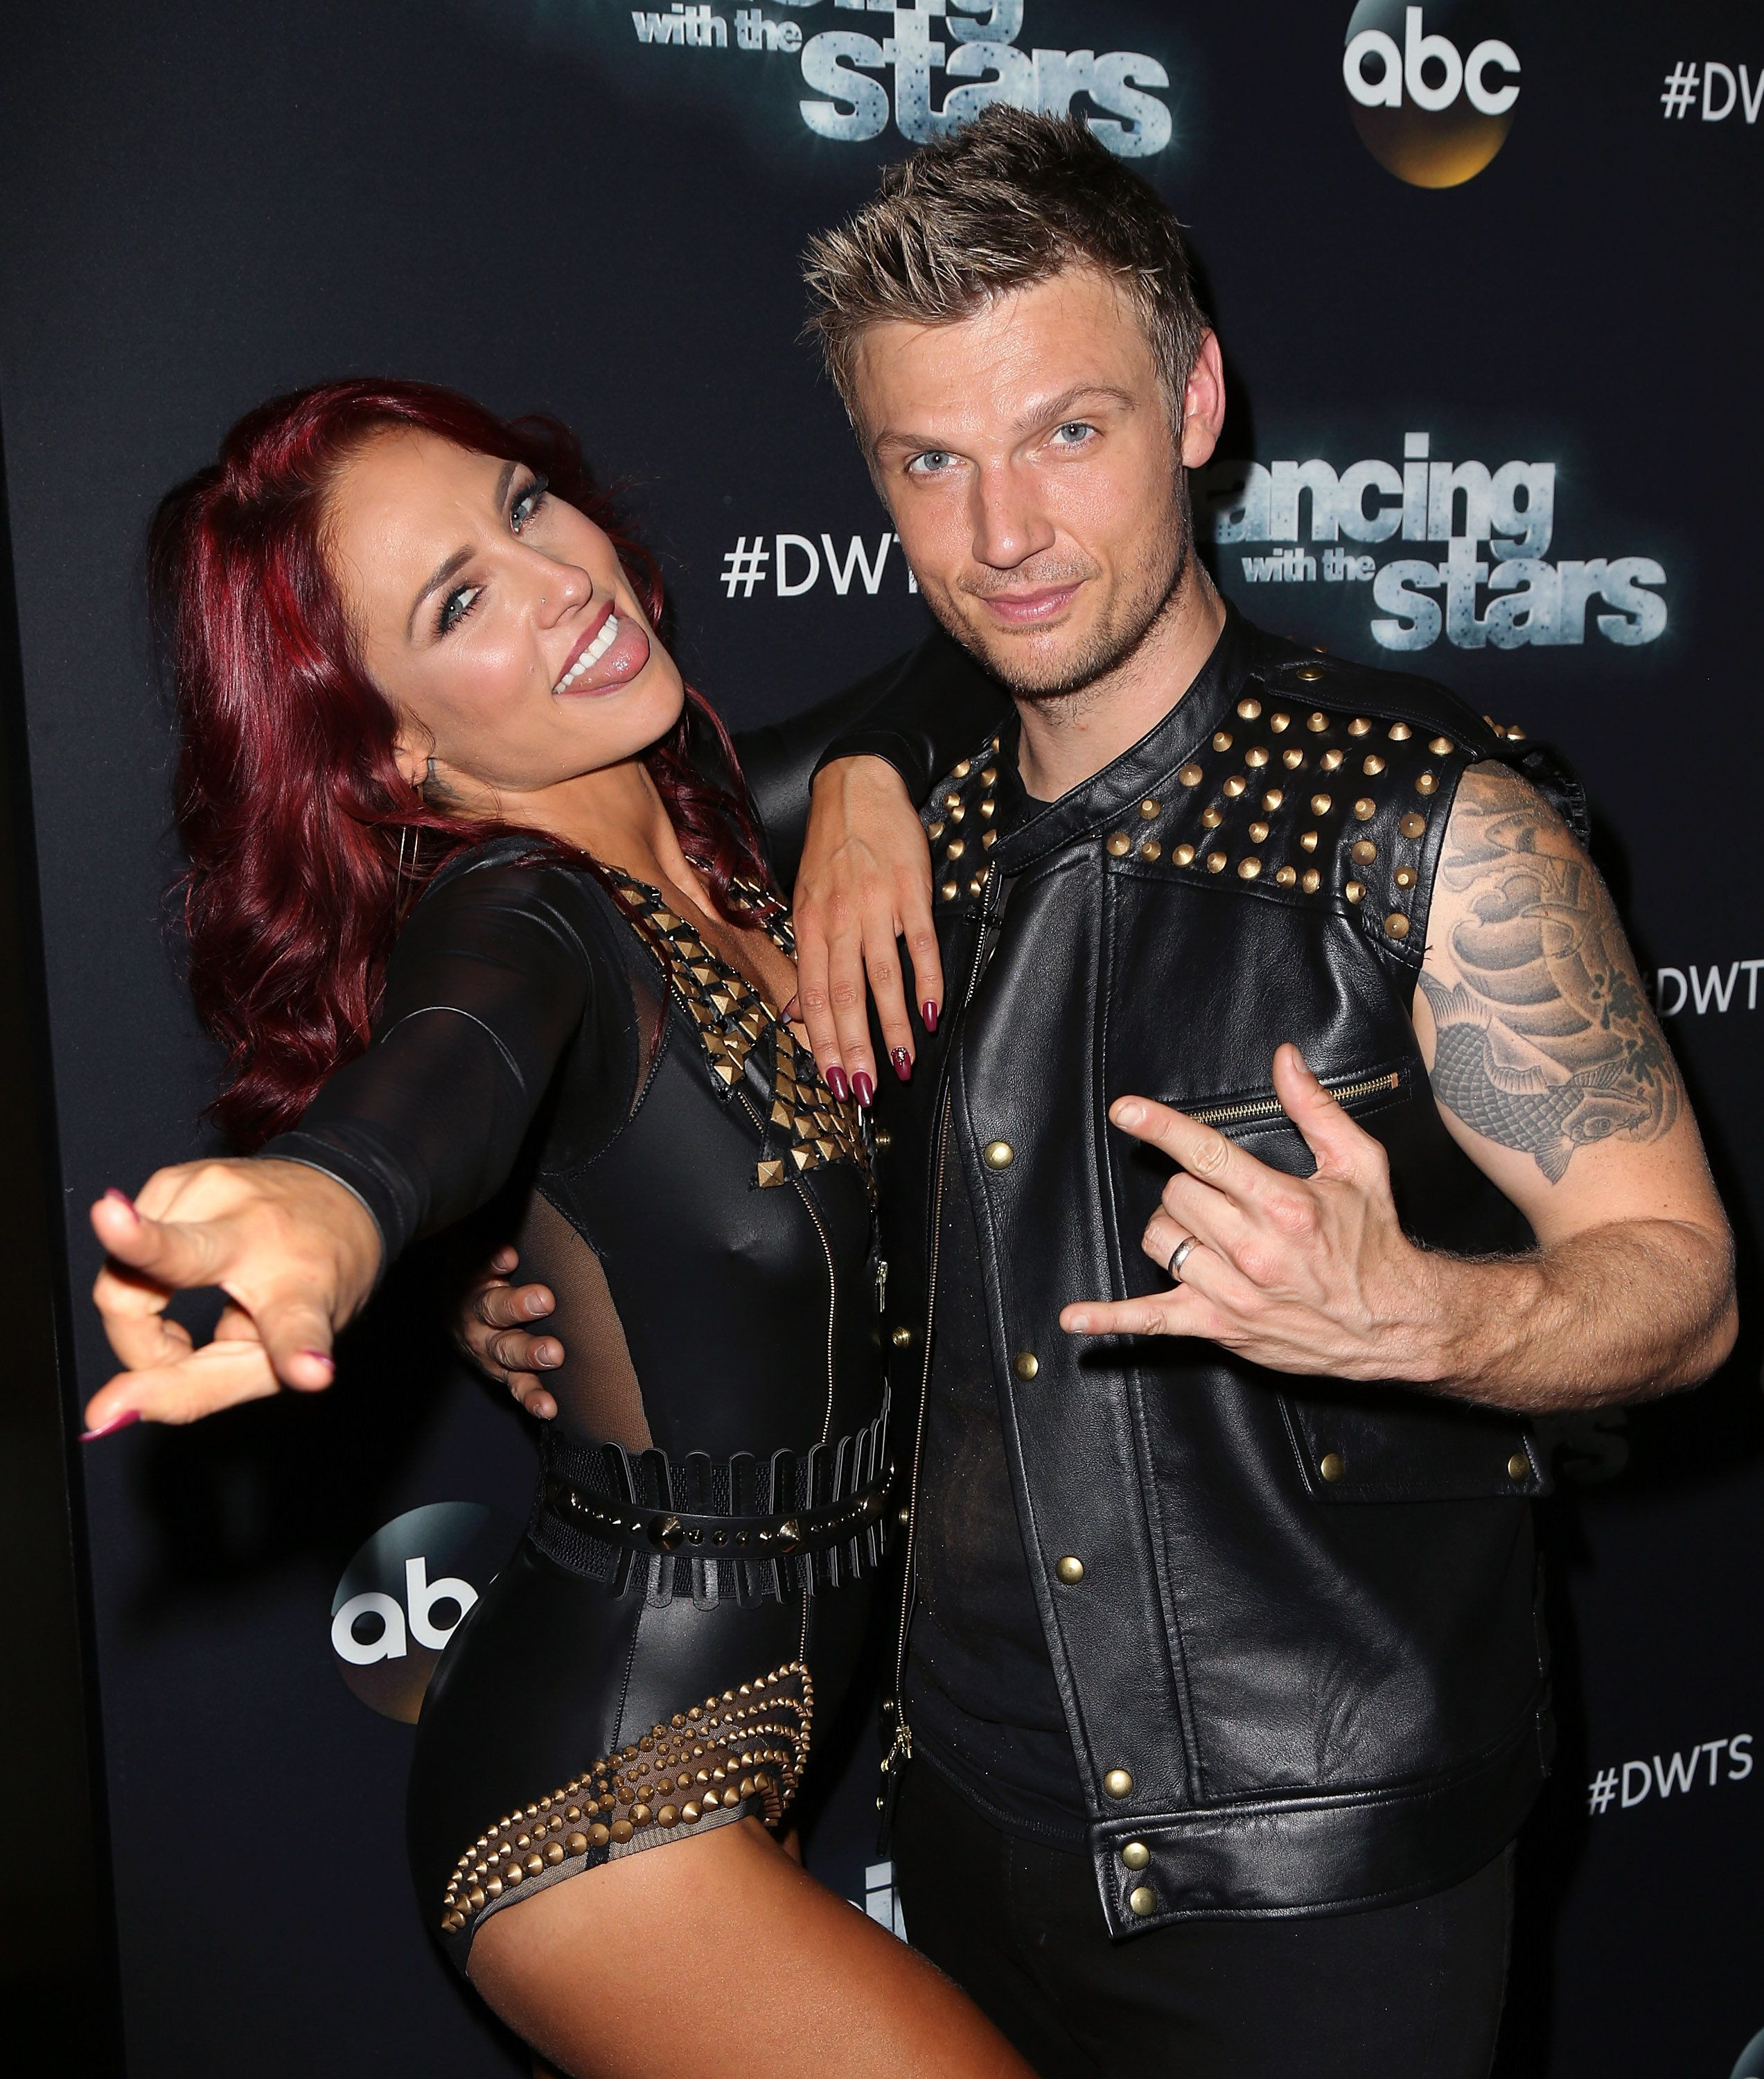 LOS ANGELES, CA - OCTOBER 05:  Singer Nick Carter (R) and dancer/TV personality Sharna Burgess attend 'Dancing with the Stars' Season 21 at CBS Televison City on October 5, 2015 in Los Angeles, California.  (Photo by David Livingston/Getty Images)